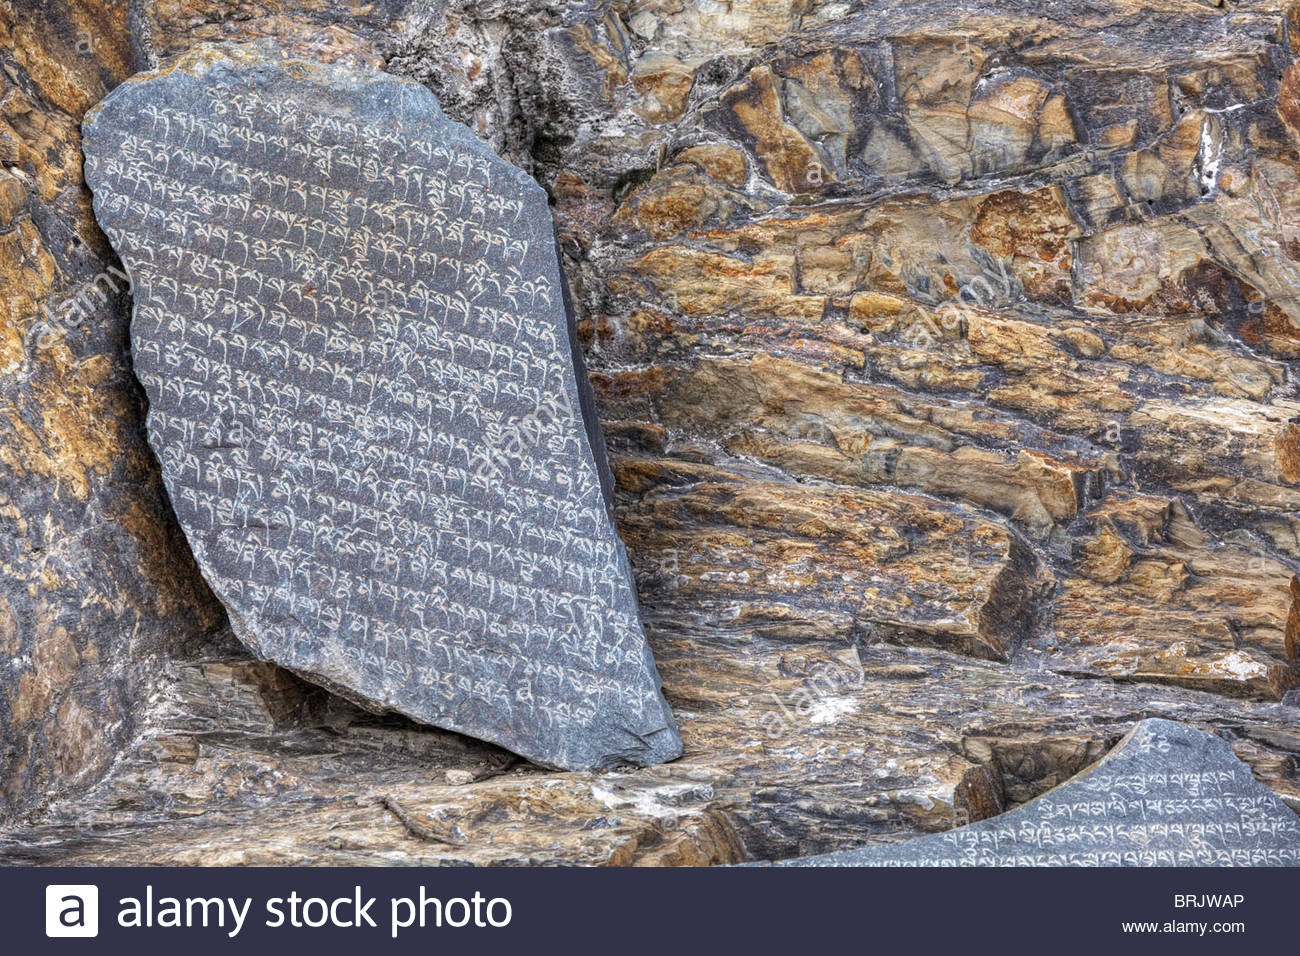 Fractured rock scripture found near the Potala Palace. - Stock Image